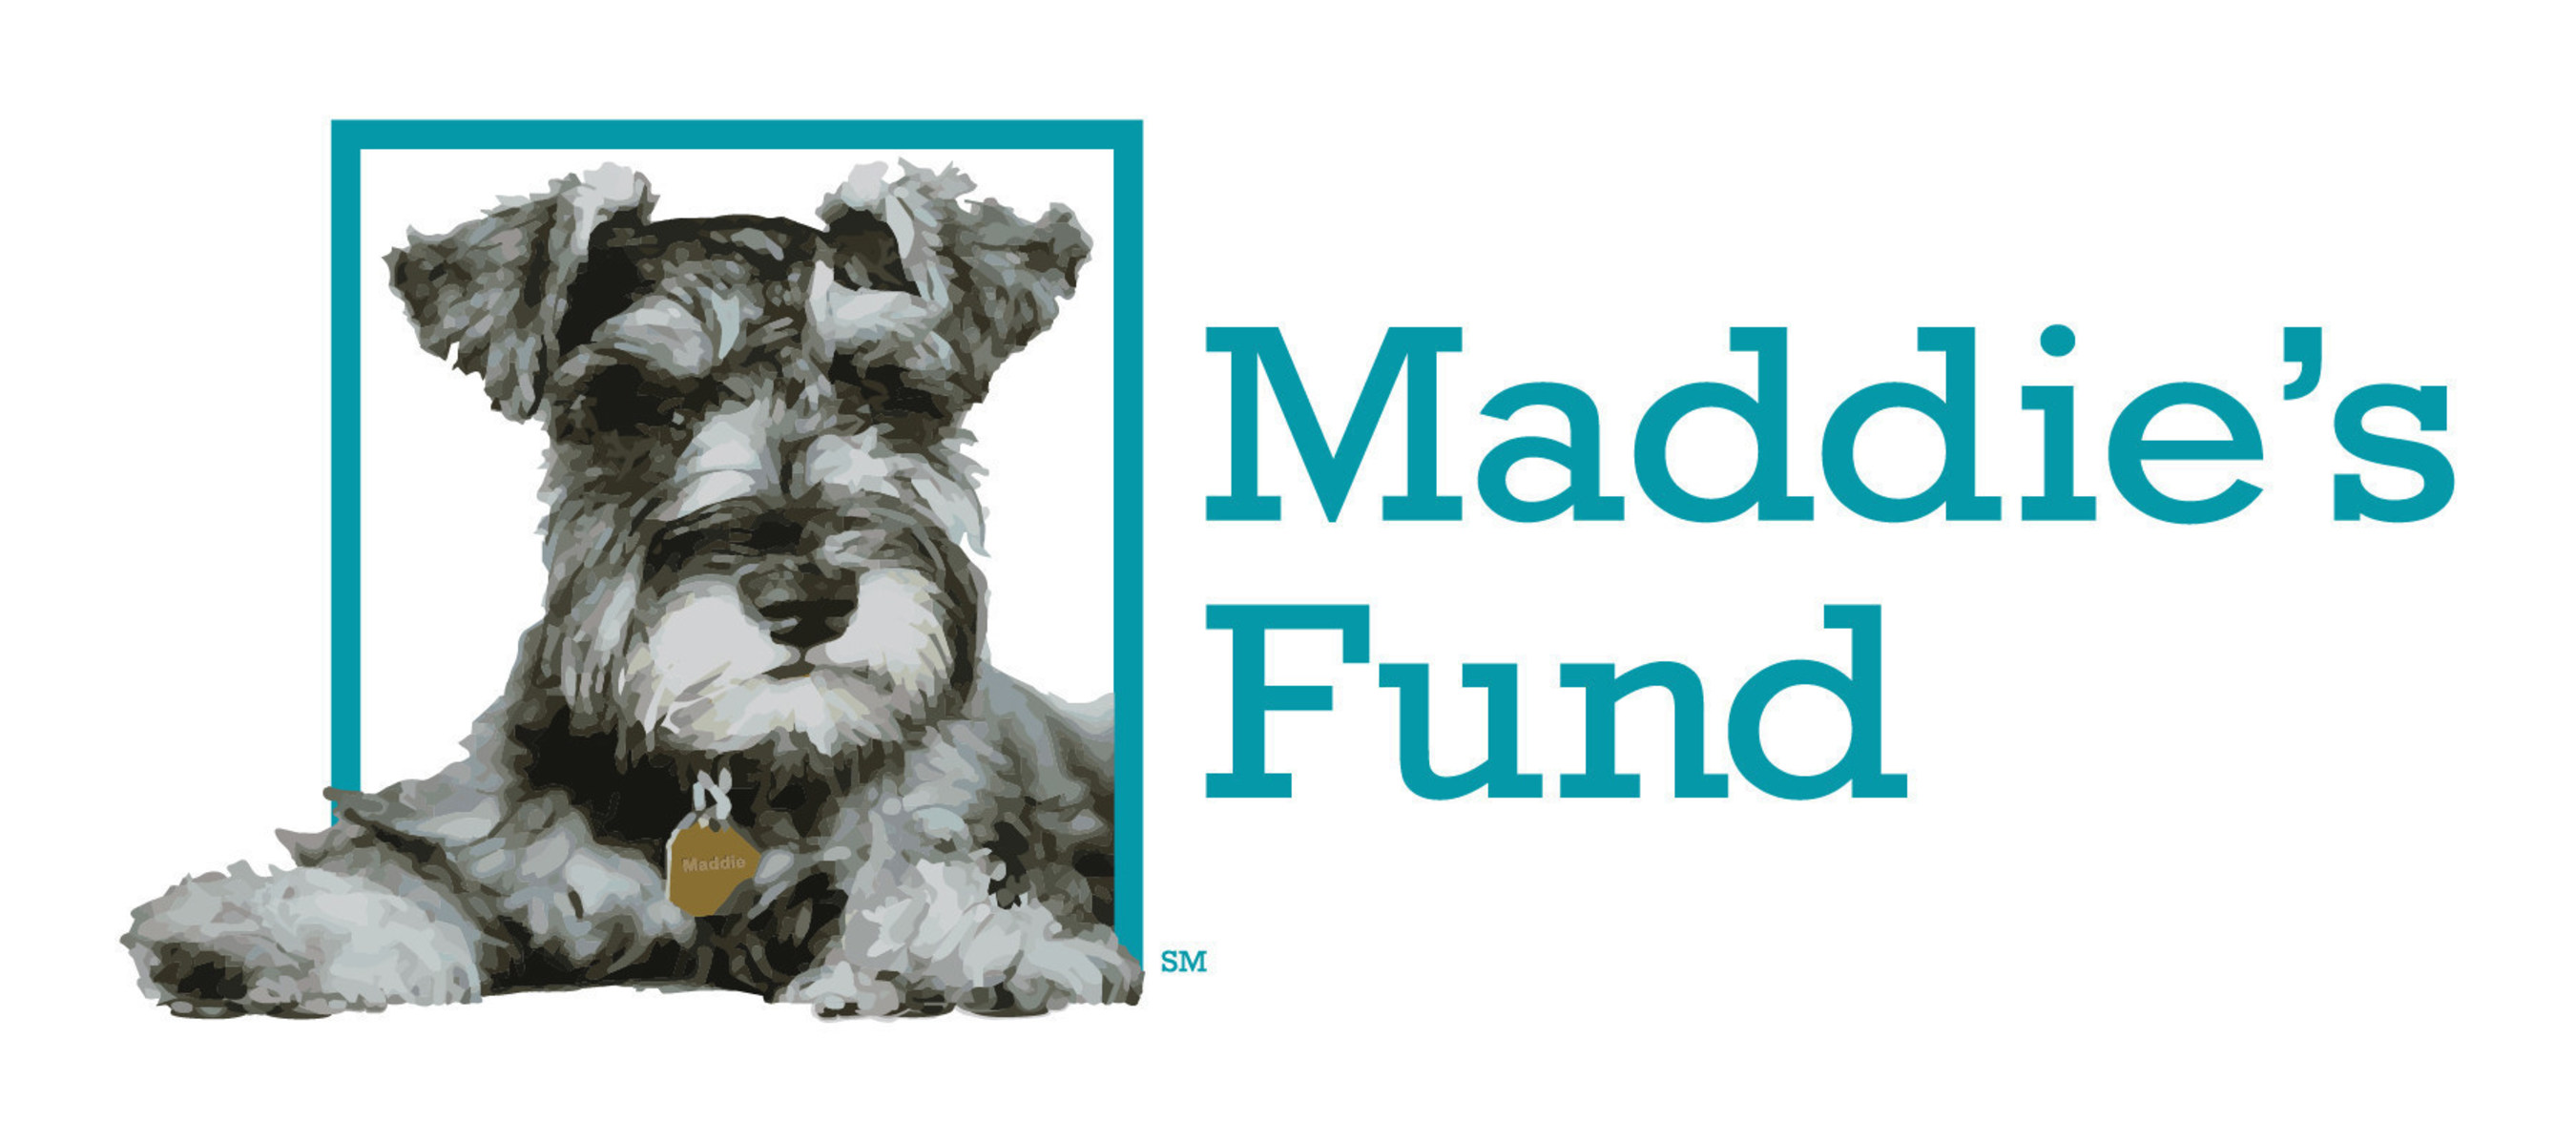 Maddie's Fund is the fulfillment of a promise to an inspirational dog, investing its resources to create a no-kill nation where every dog and cat is guaranteed a healthy home or habitat. #ThanksToMaddie.